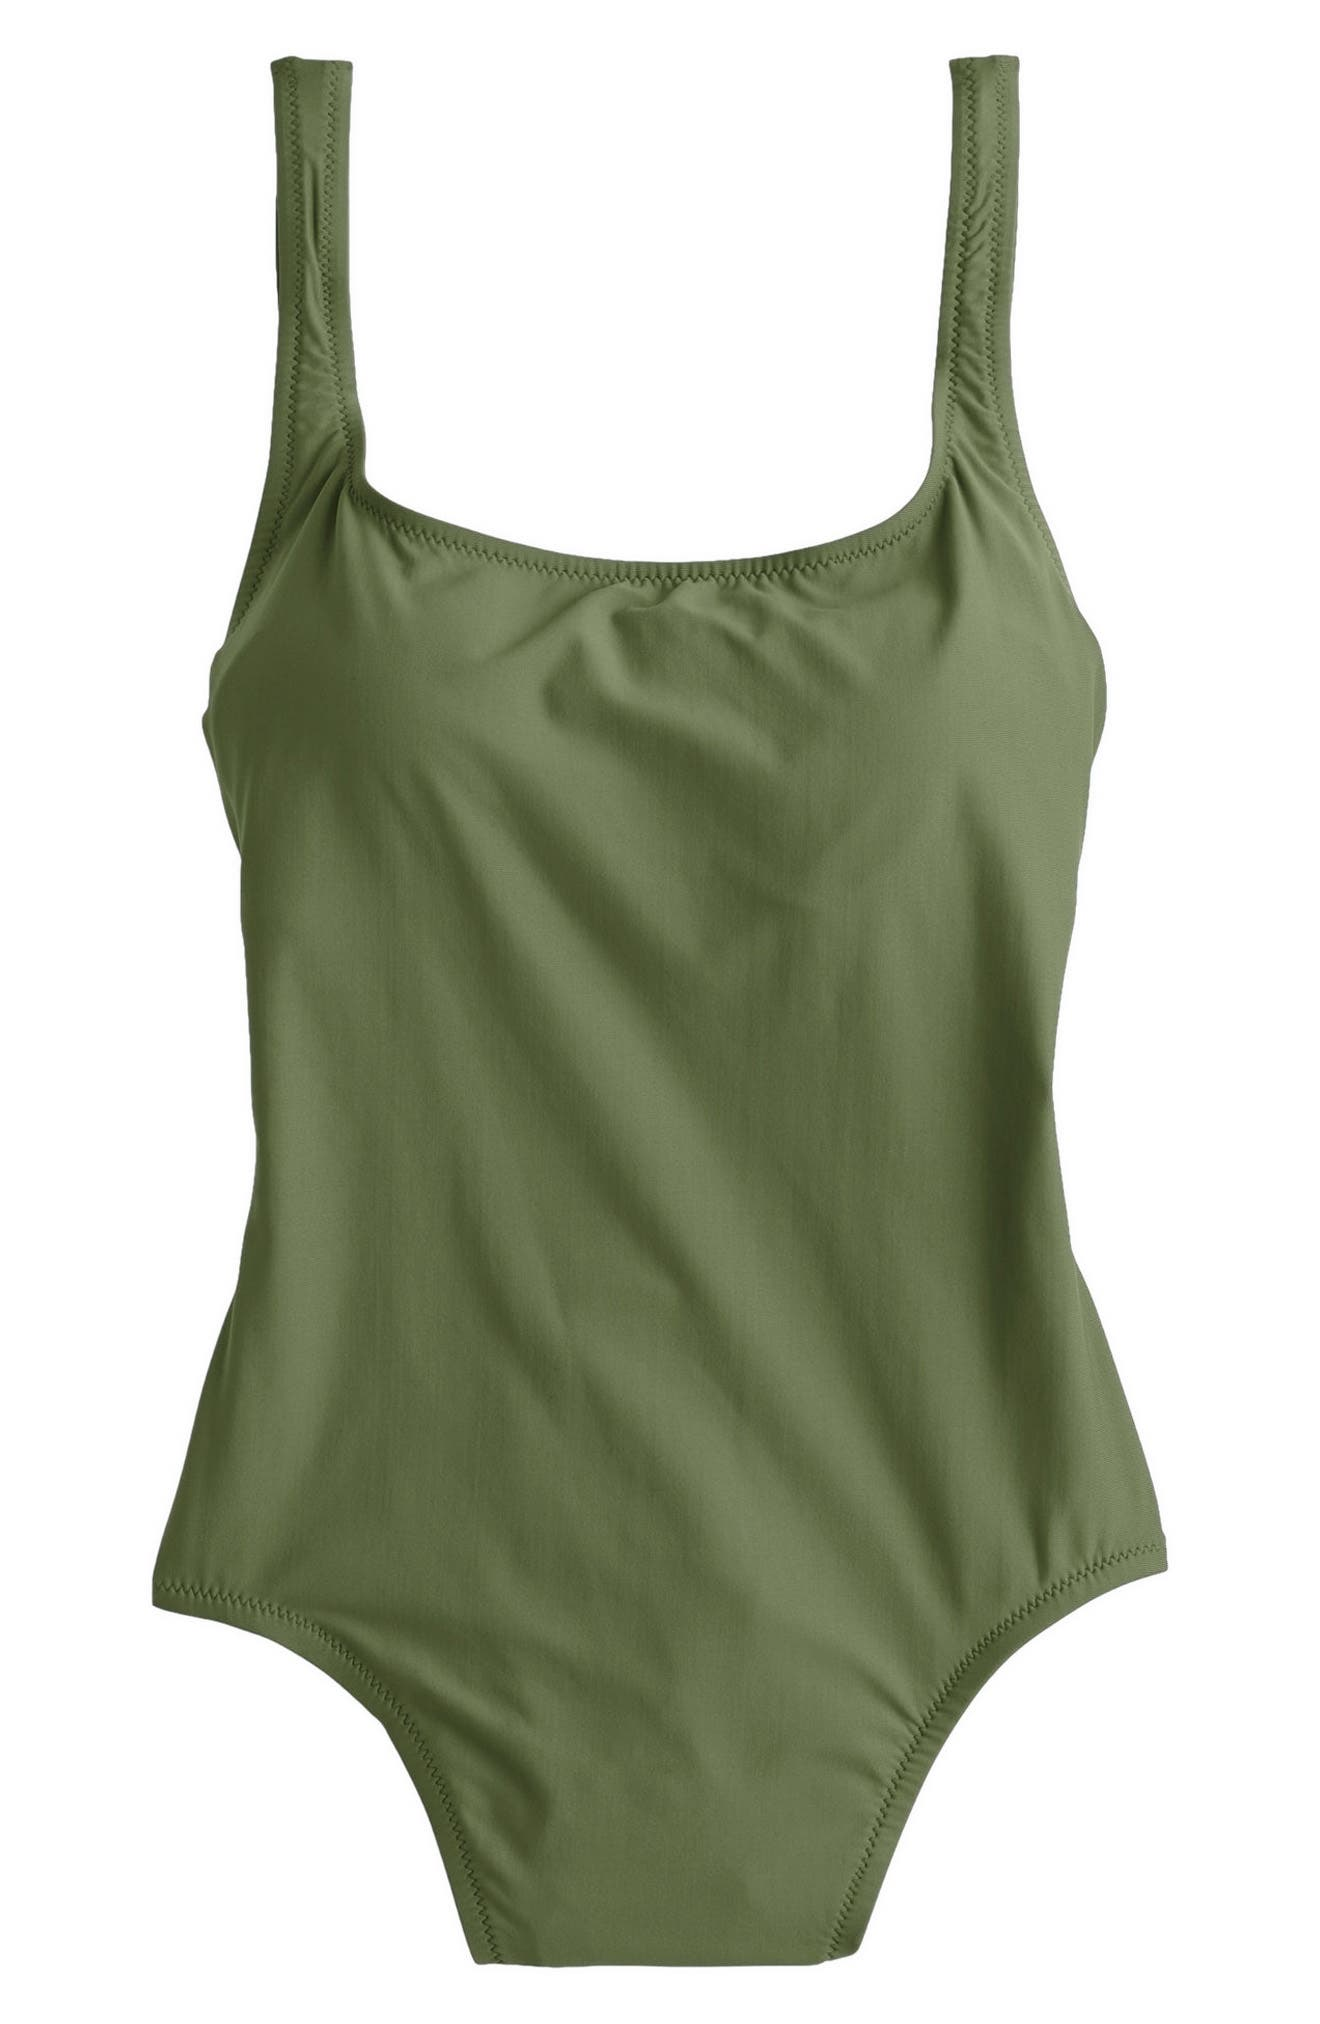 Tactel<sup>®</sup> Nylon One-Piece Swimsuit,                             Main thumbnail 1, color,                             Safari